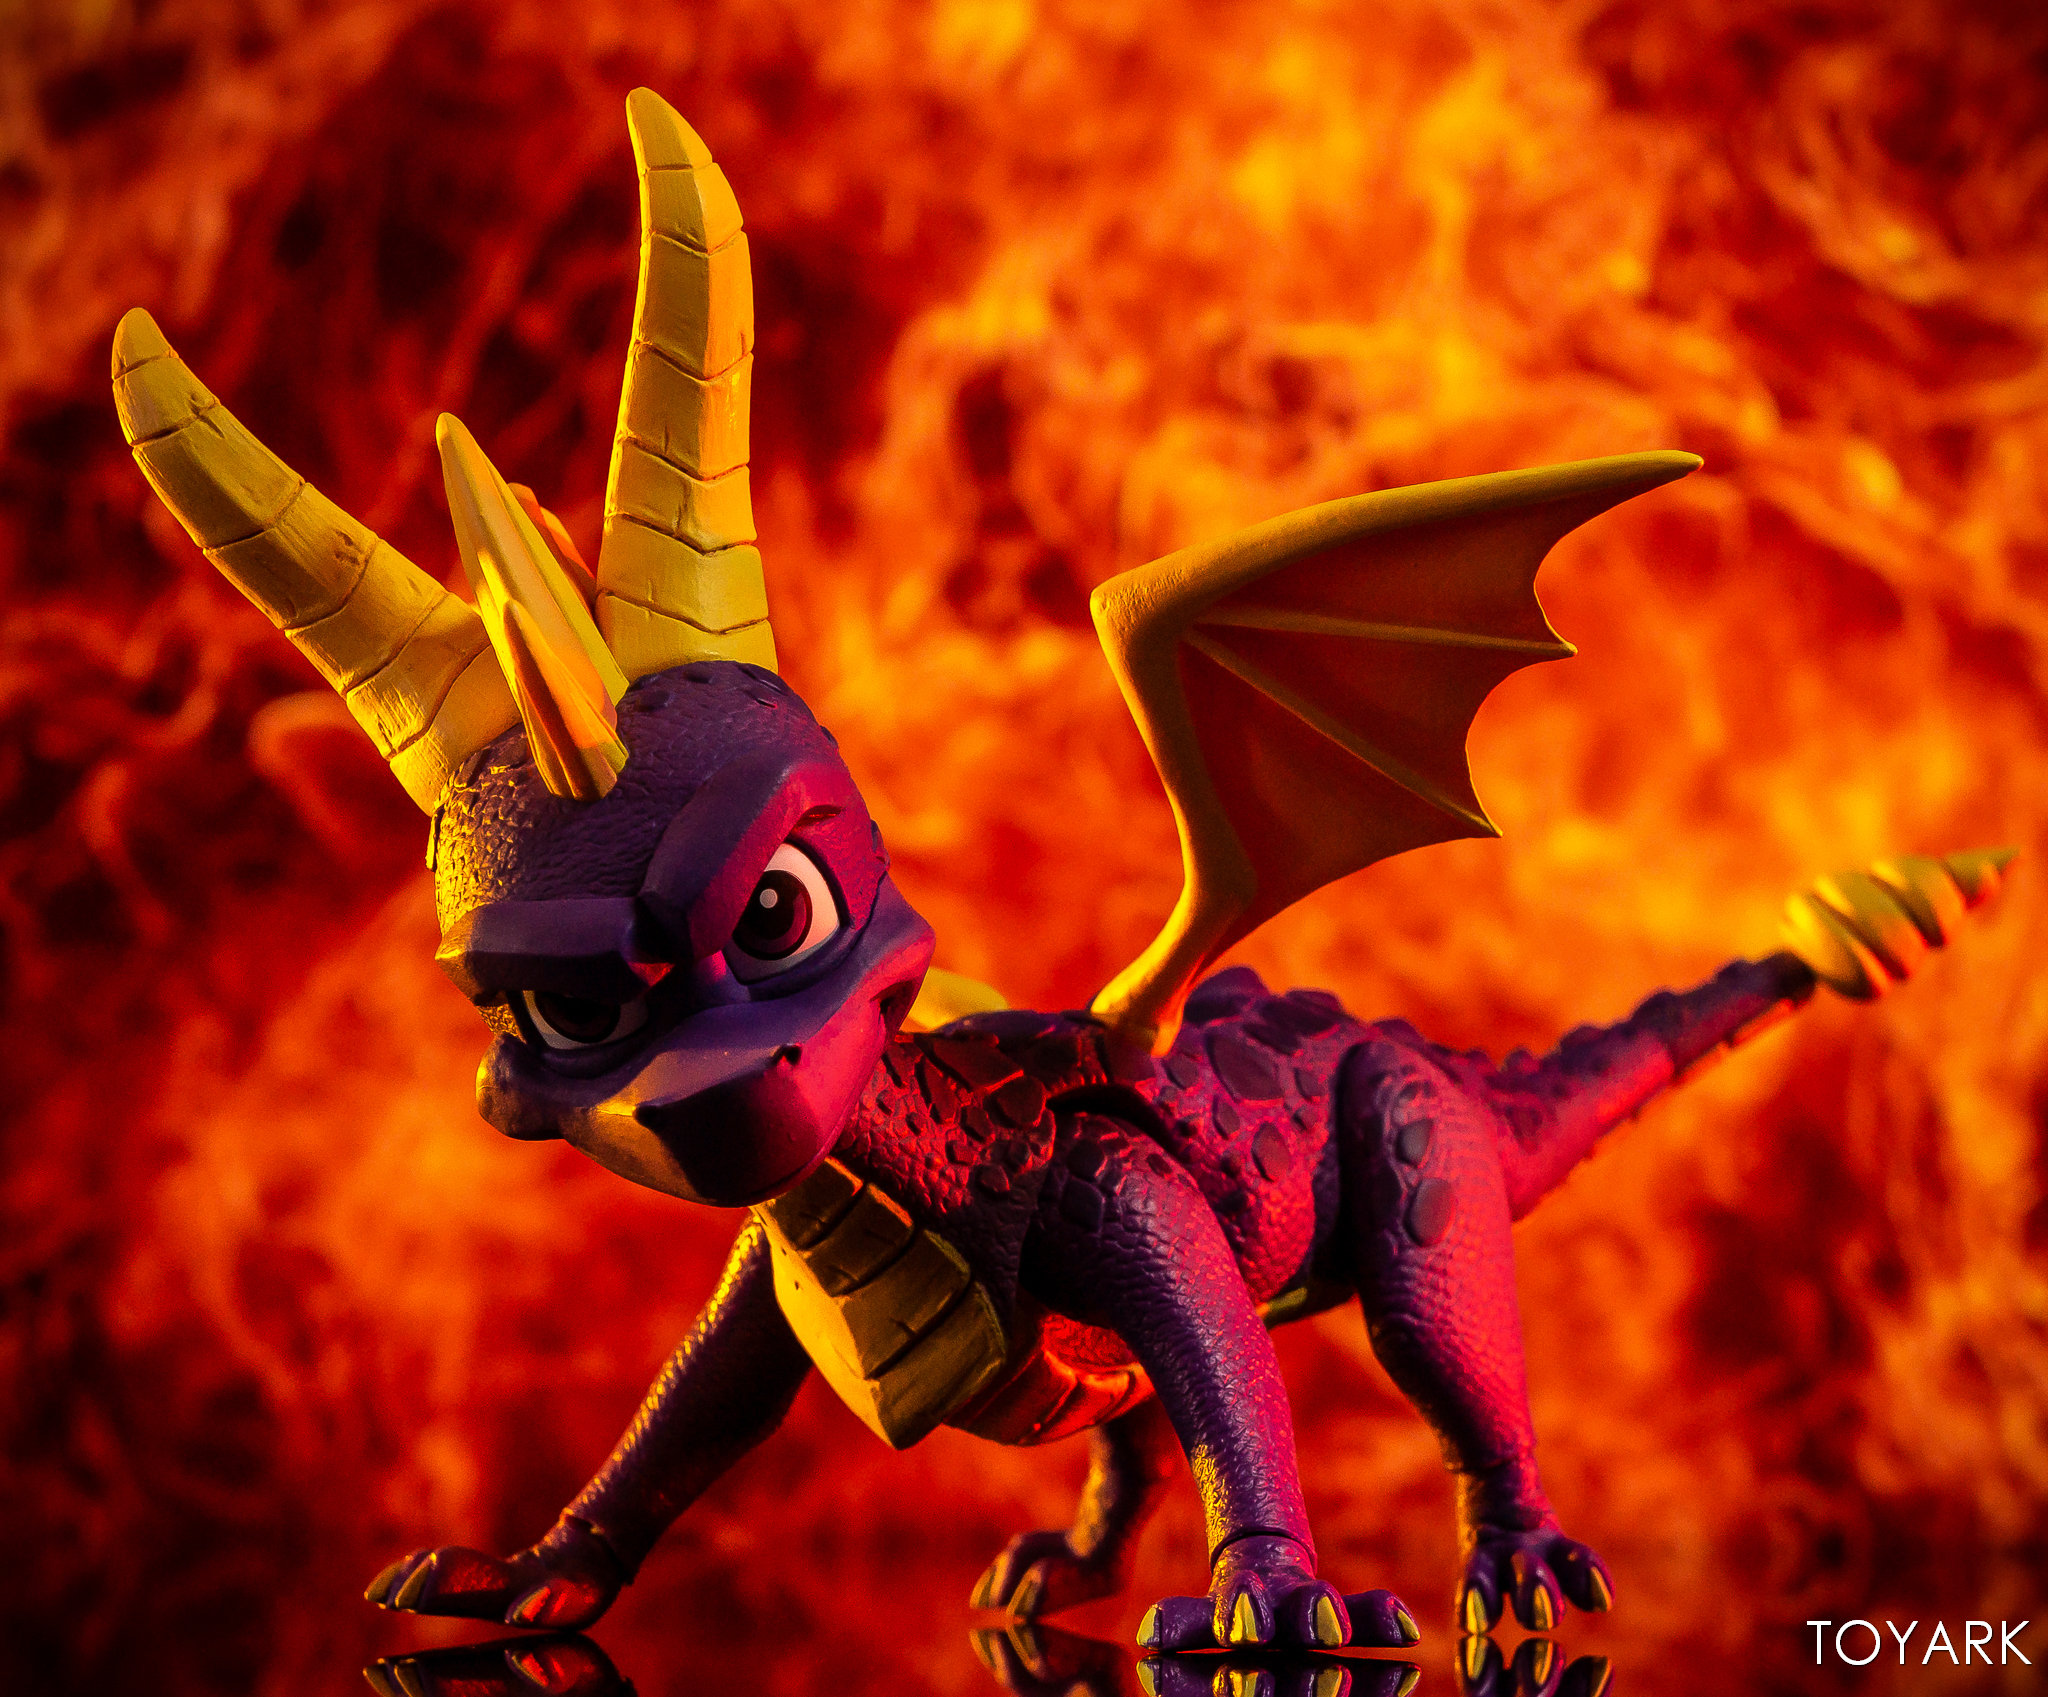 https://news.toyark.com/wp-content/uploads/sites/4/2019/03/NECA-Spyro-The-Dragon-Figure-036.jpg